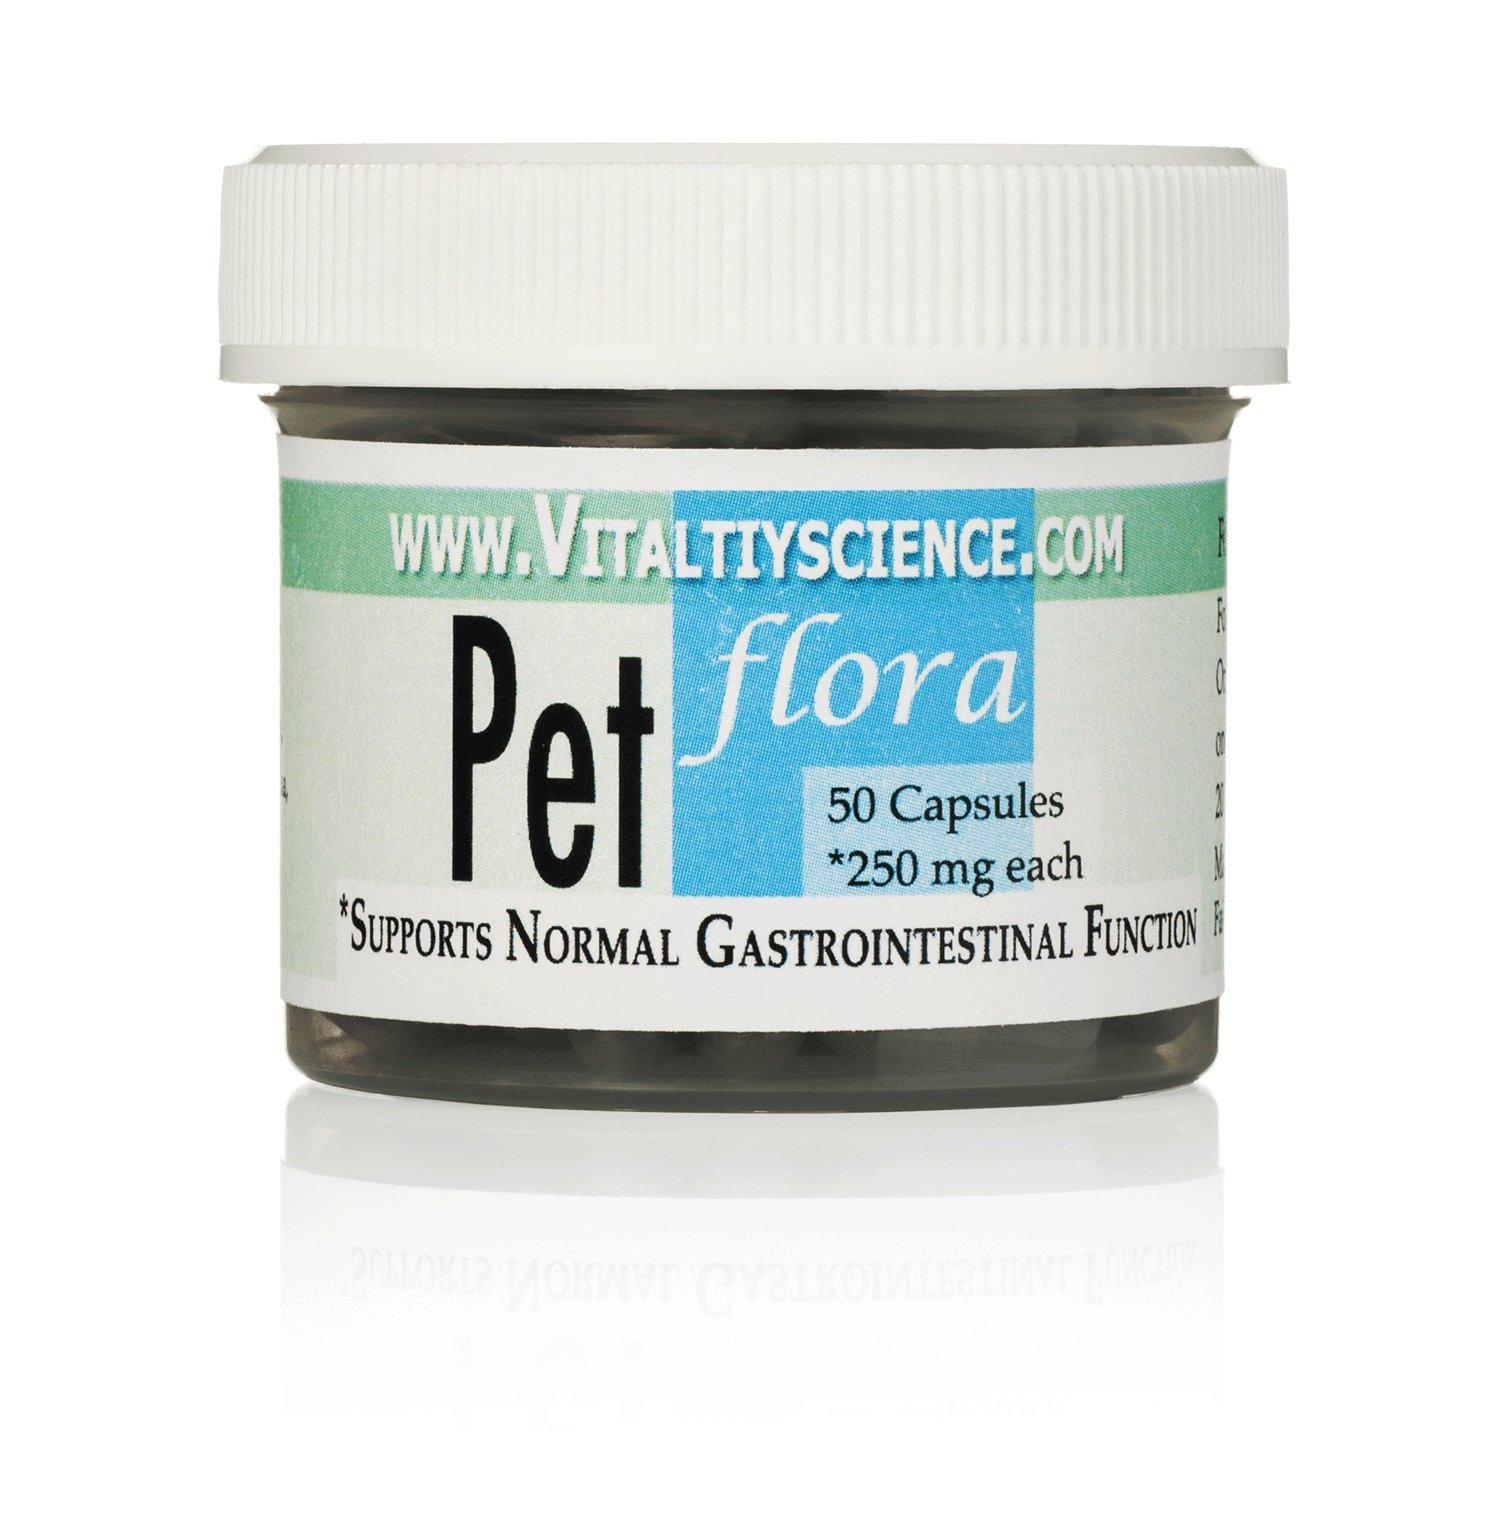 Pet Flora 50 caps - Soil Based Probiotic for Cats - Supports Normal Gastrointestinal Function by Vitality Science